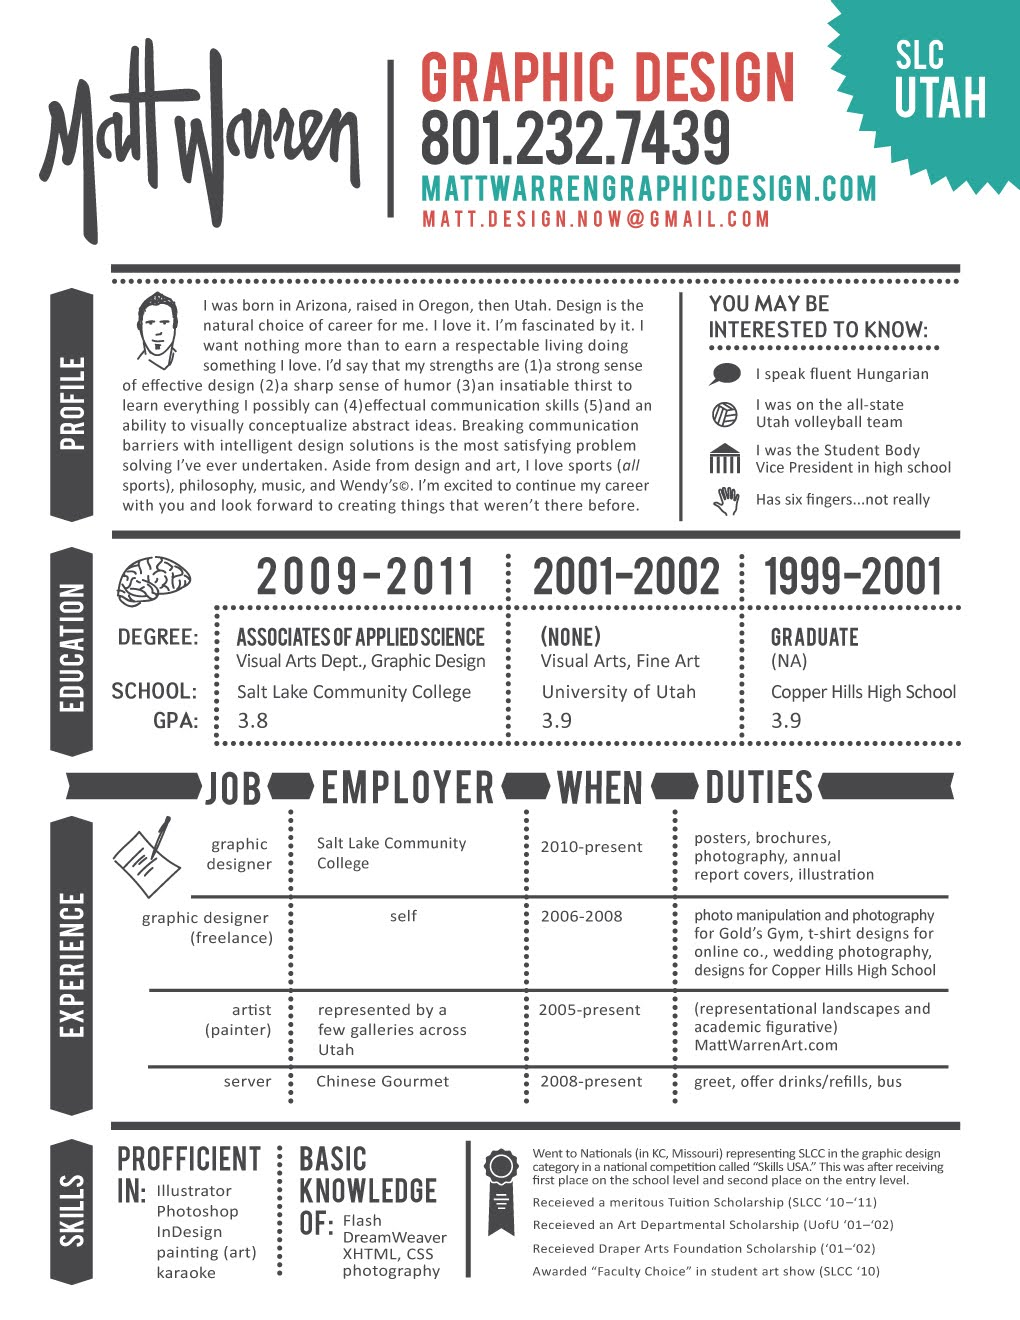 Opposenewapstandardsus  Pretty  Images About Hire Me On Pinterest  Graphic Designer Resume  With Exquisite  Images About Hire Me On Pinterest  Graphic Designer Resume Resume Design And Resume With Charming Walmart Cashier Resume Also Sample Consulting Resume In Addition Headshot And Resume And Administrative Secretary Resume As Well As Sales Analyst Resume Additionally How To Write A Technical Resume From Pinterestcom With Opposenewapstandardsus  Exquisite  Images About Hire Me On Pinterest  Graphic Designer Resume  With Charming  Images About Hire Me On Pinterest  Graphic Designer Resume Resume Design And Resume And Pretty Walmart Cashier Resume Also Sample Consulting Resume In Addition Headshot And Resume From Pinterestcom